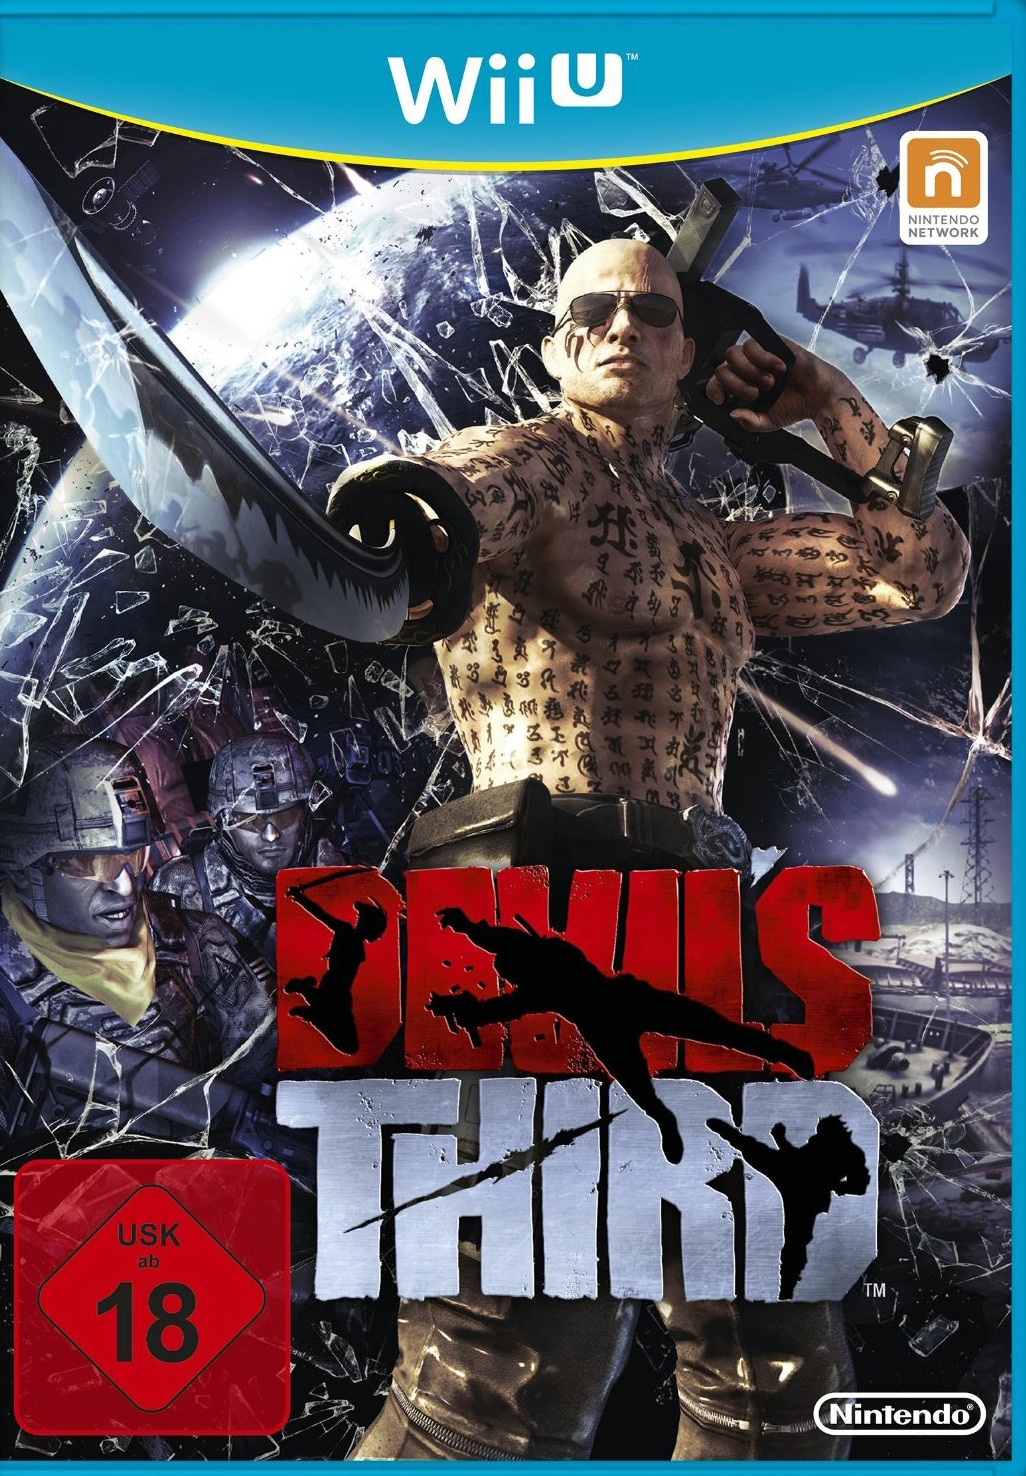 devils third box art - Nintendo Reveals Release Dates for Fatal Frame: The Black Haired Shrine Maiden and The Devil's Third